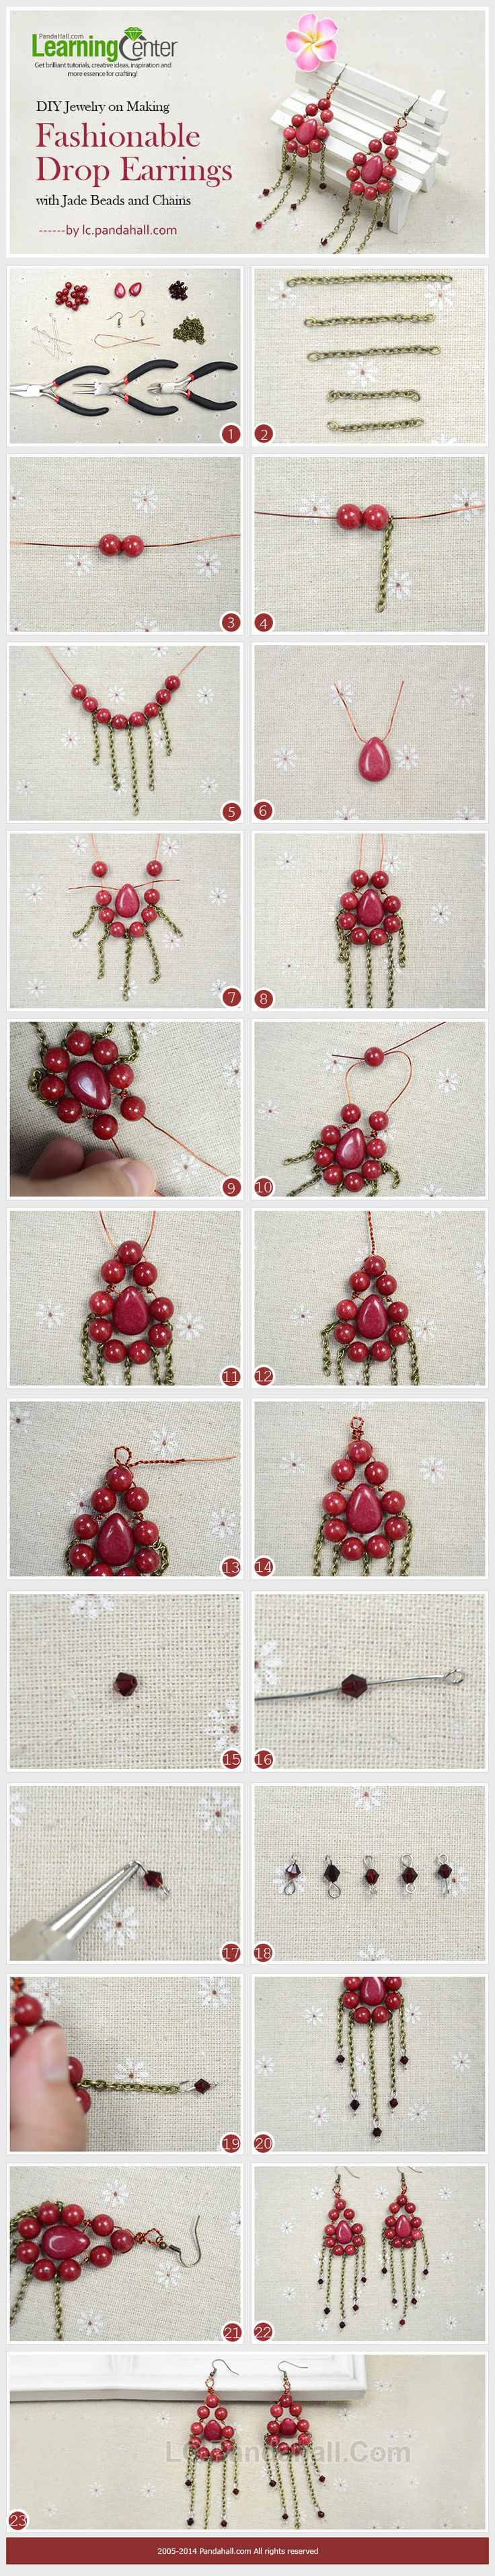 DIY Jewelry on Making Fashionable Drop Earrings with Jade Beads and Chains